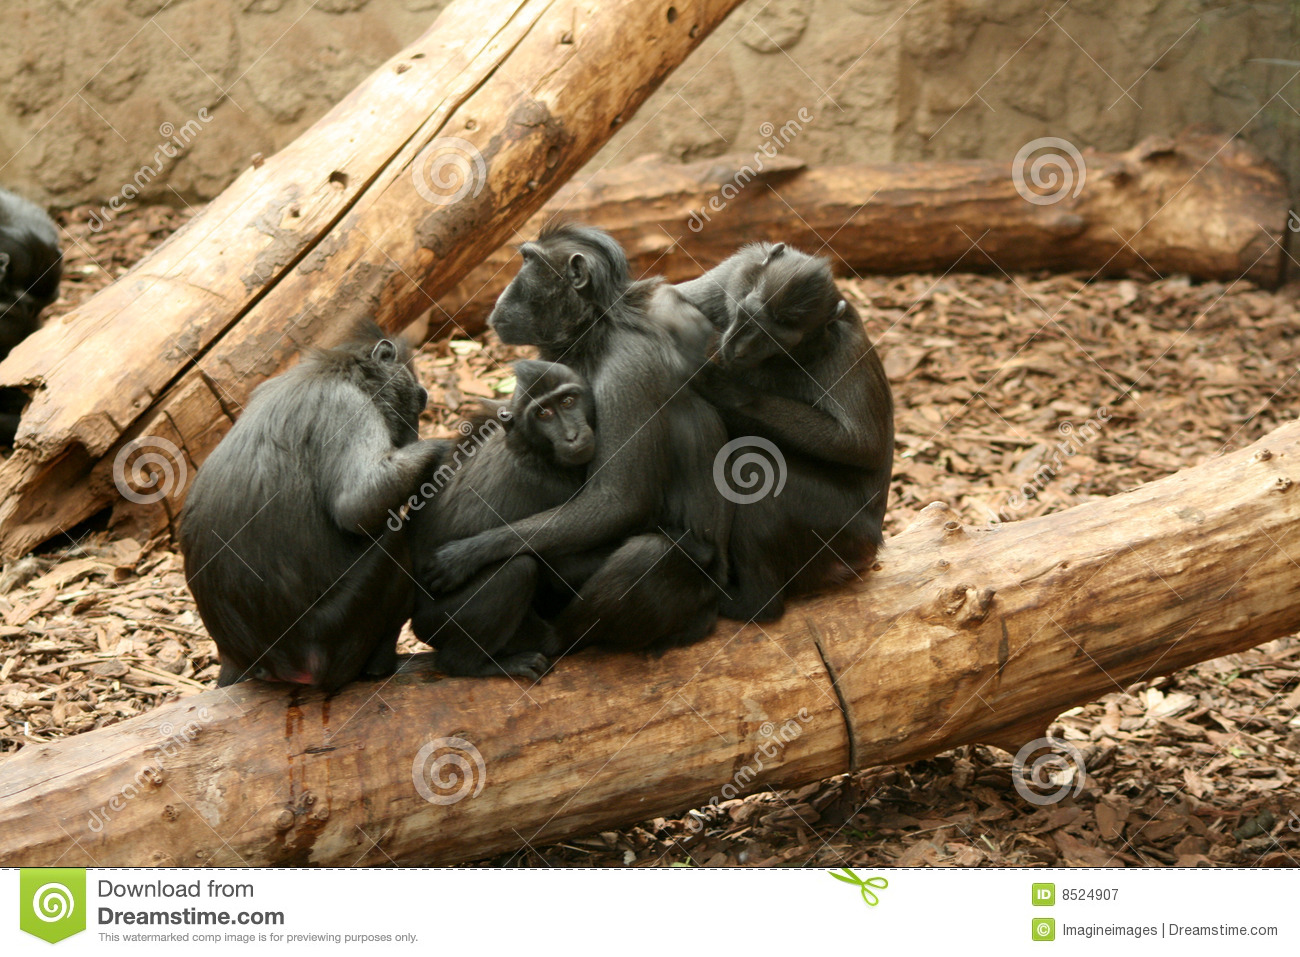 Celebes Crested Macaque clipart #11, Download drawings